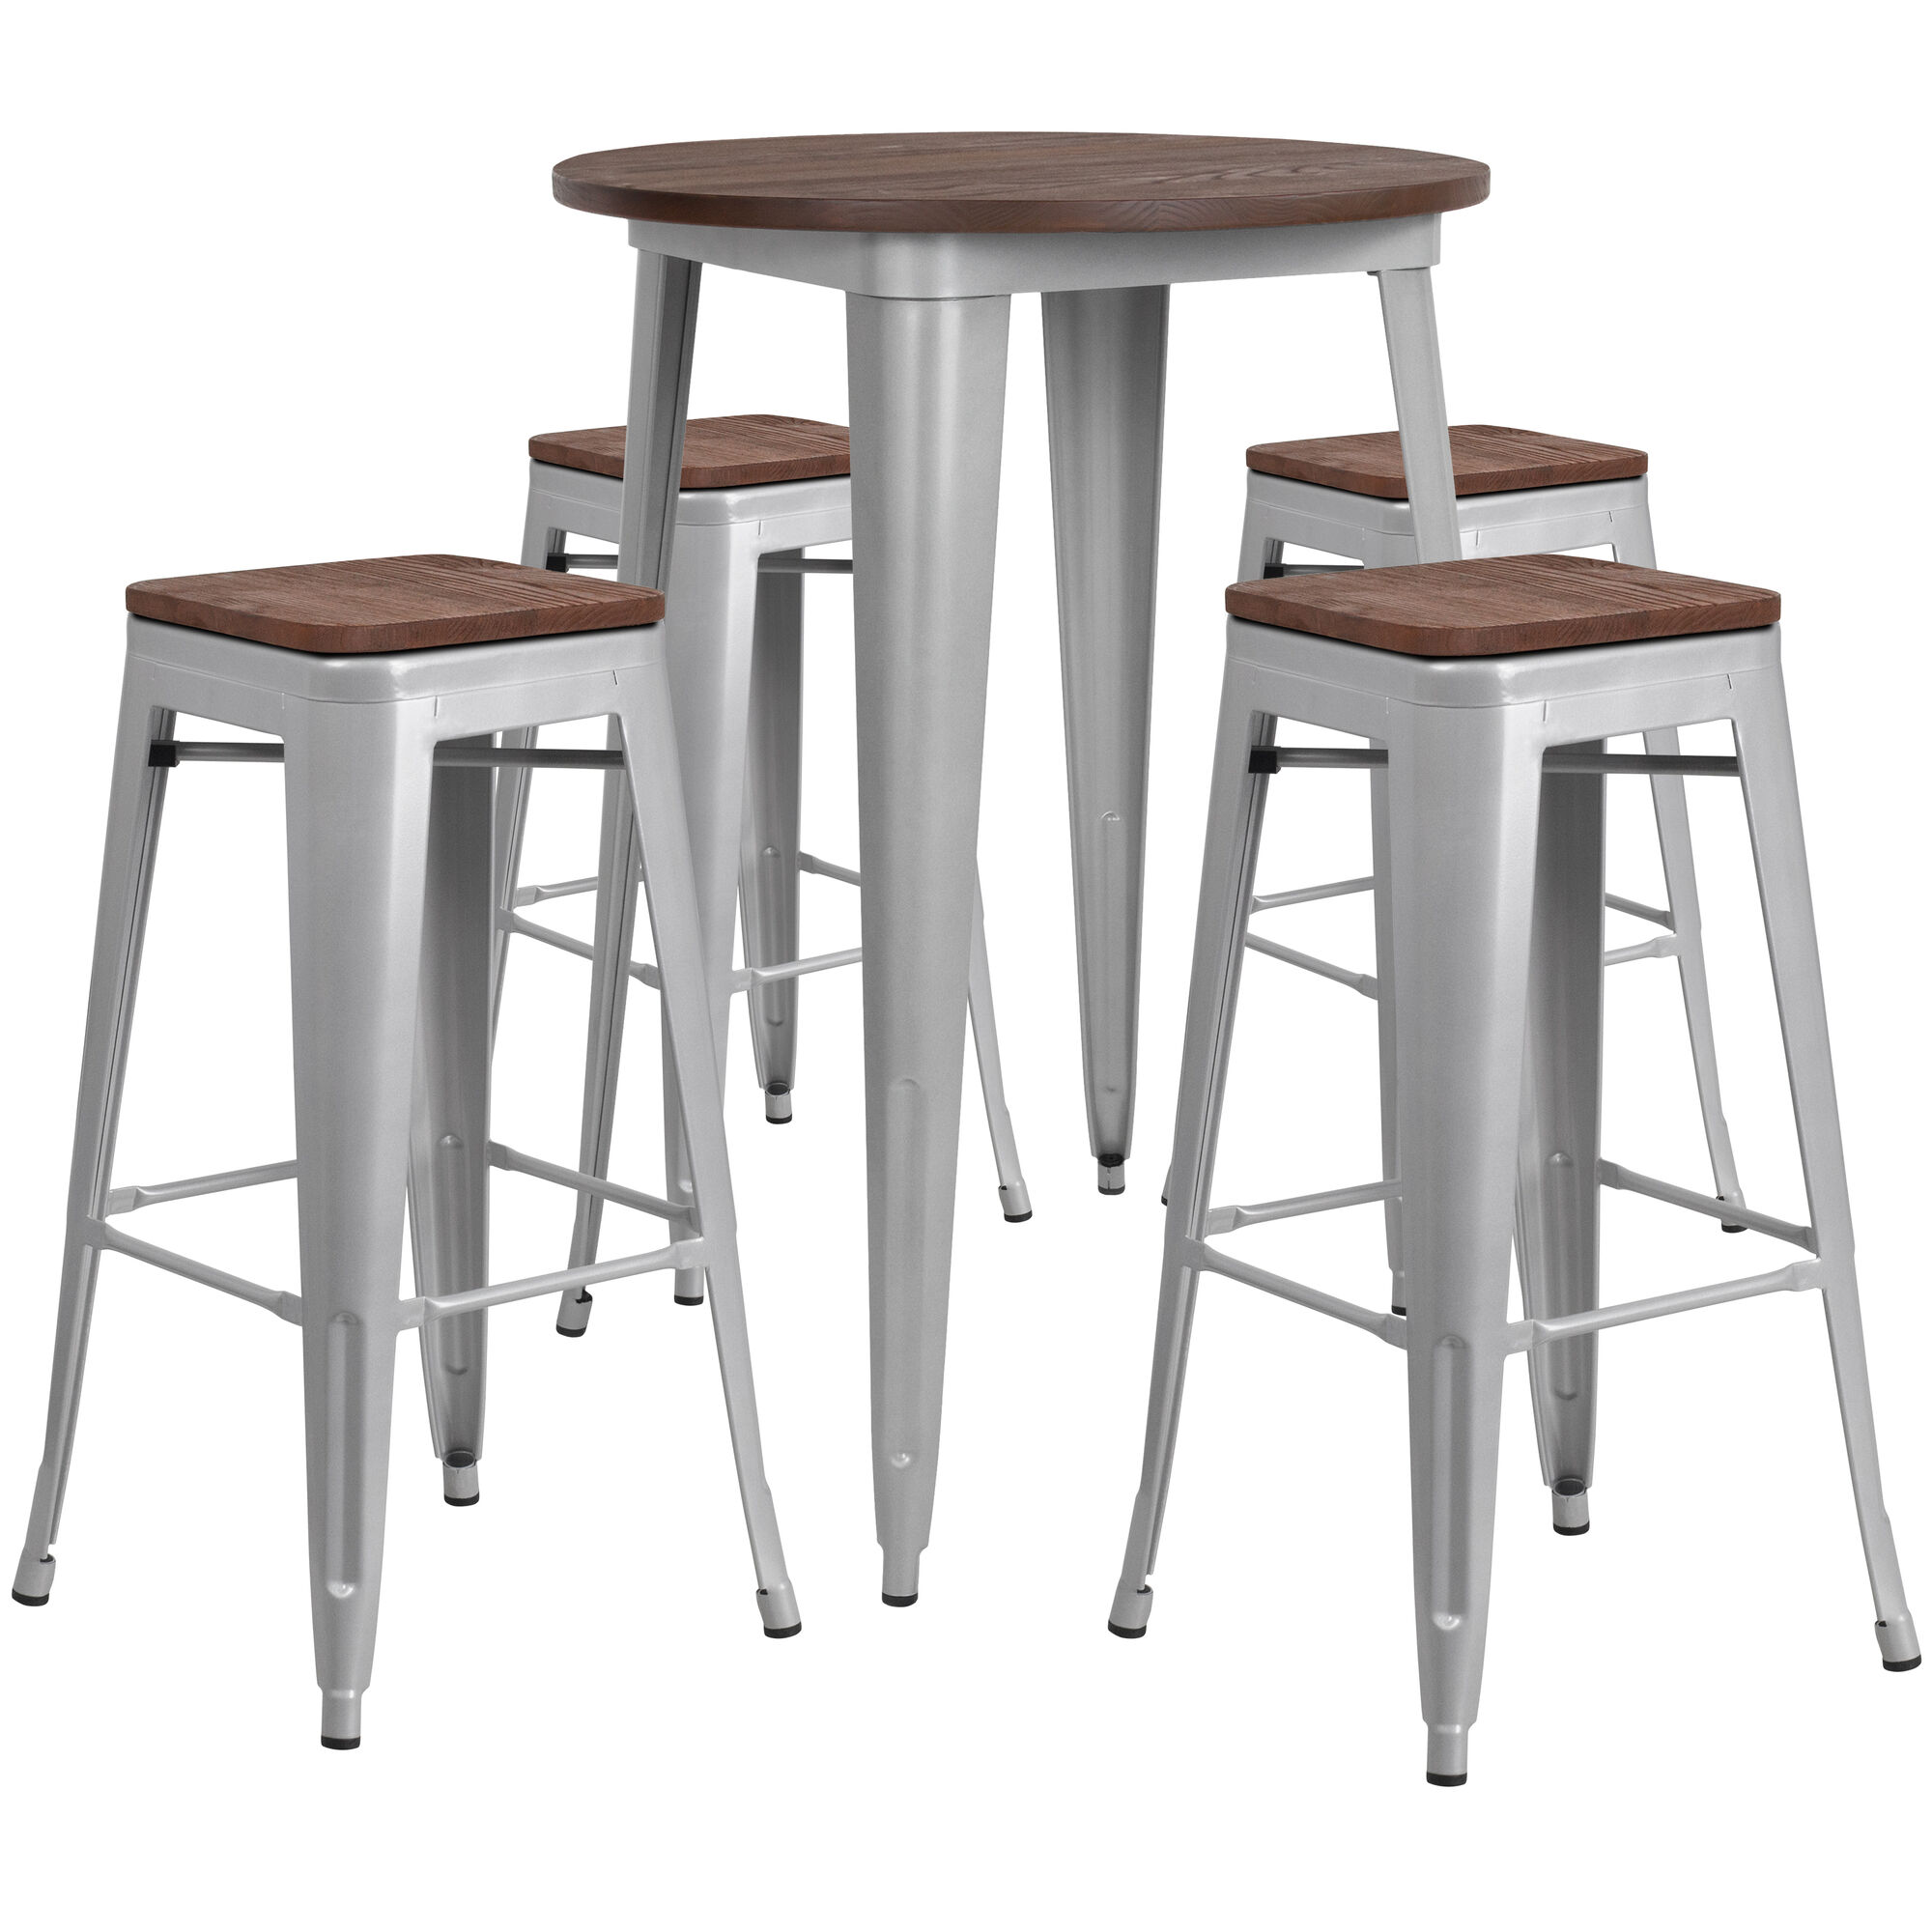 Superb 30 Round Silver Metal Bar Table Set With Wood Top And 4 Backless Stools Machost Co Dining Chair Design Ideas Machostcouk